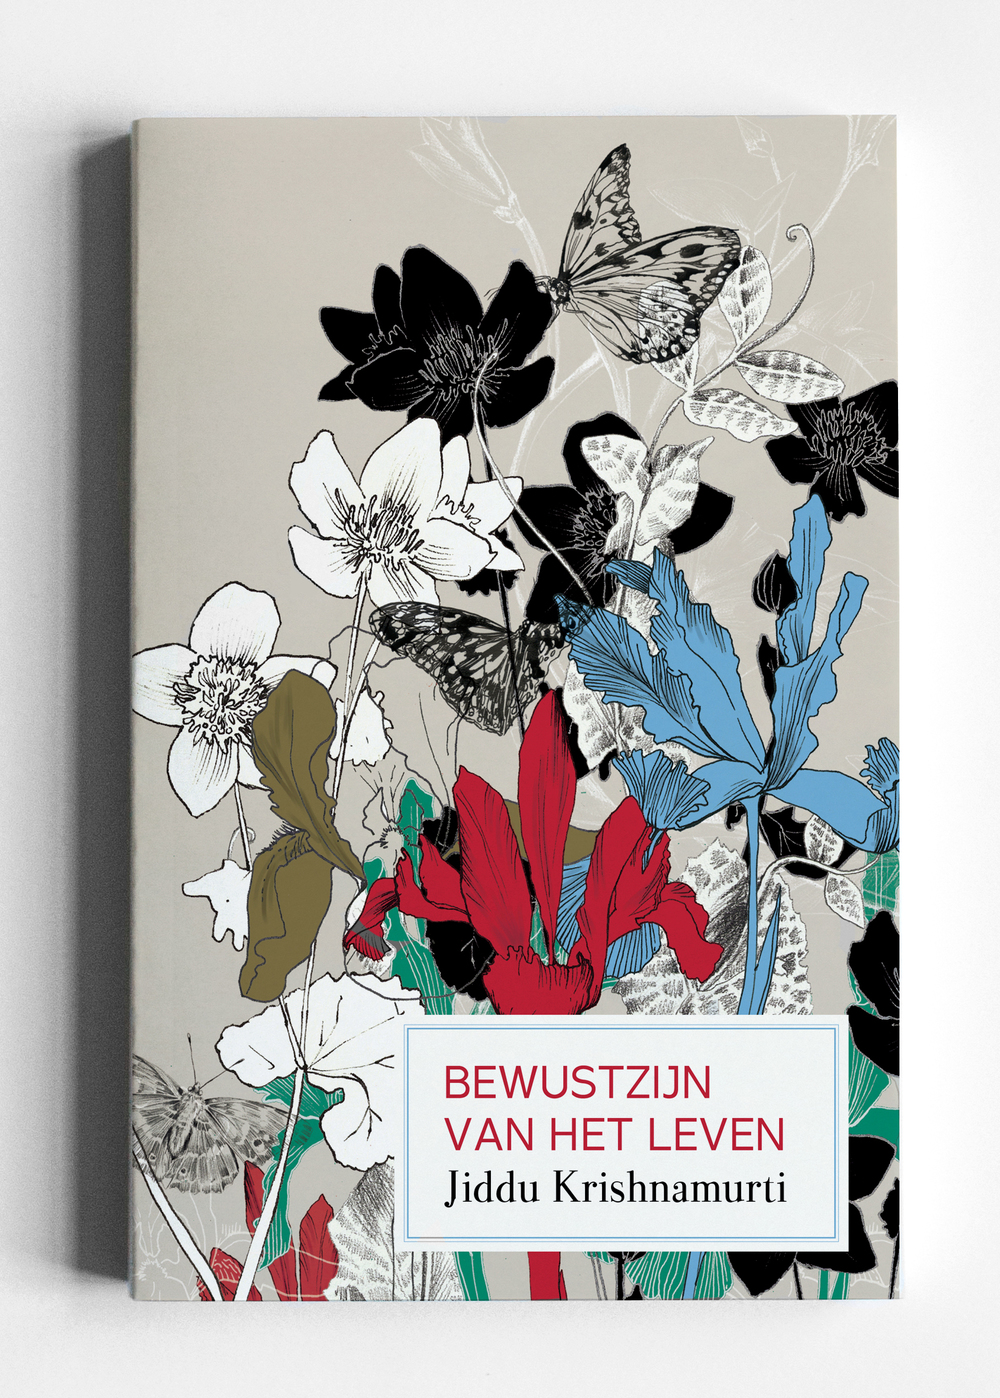 fig 1. Bookcover, layered inky flowers